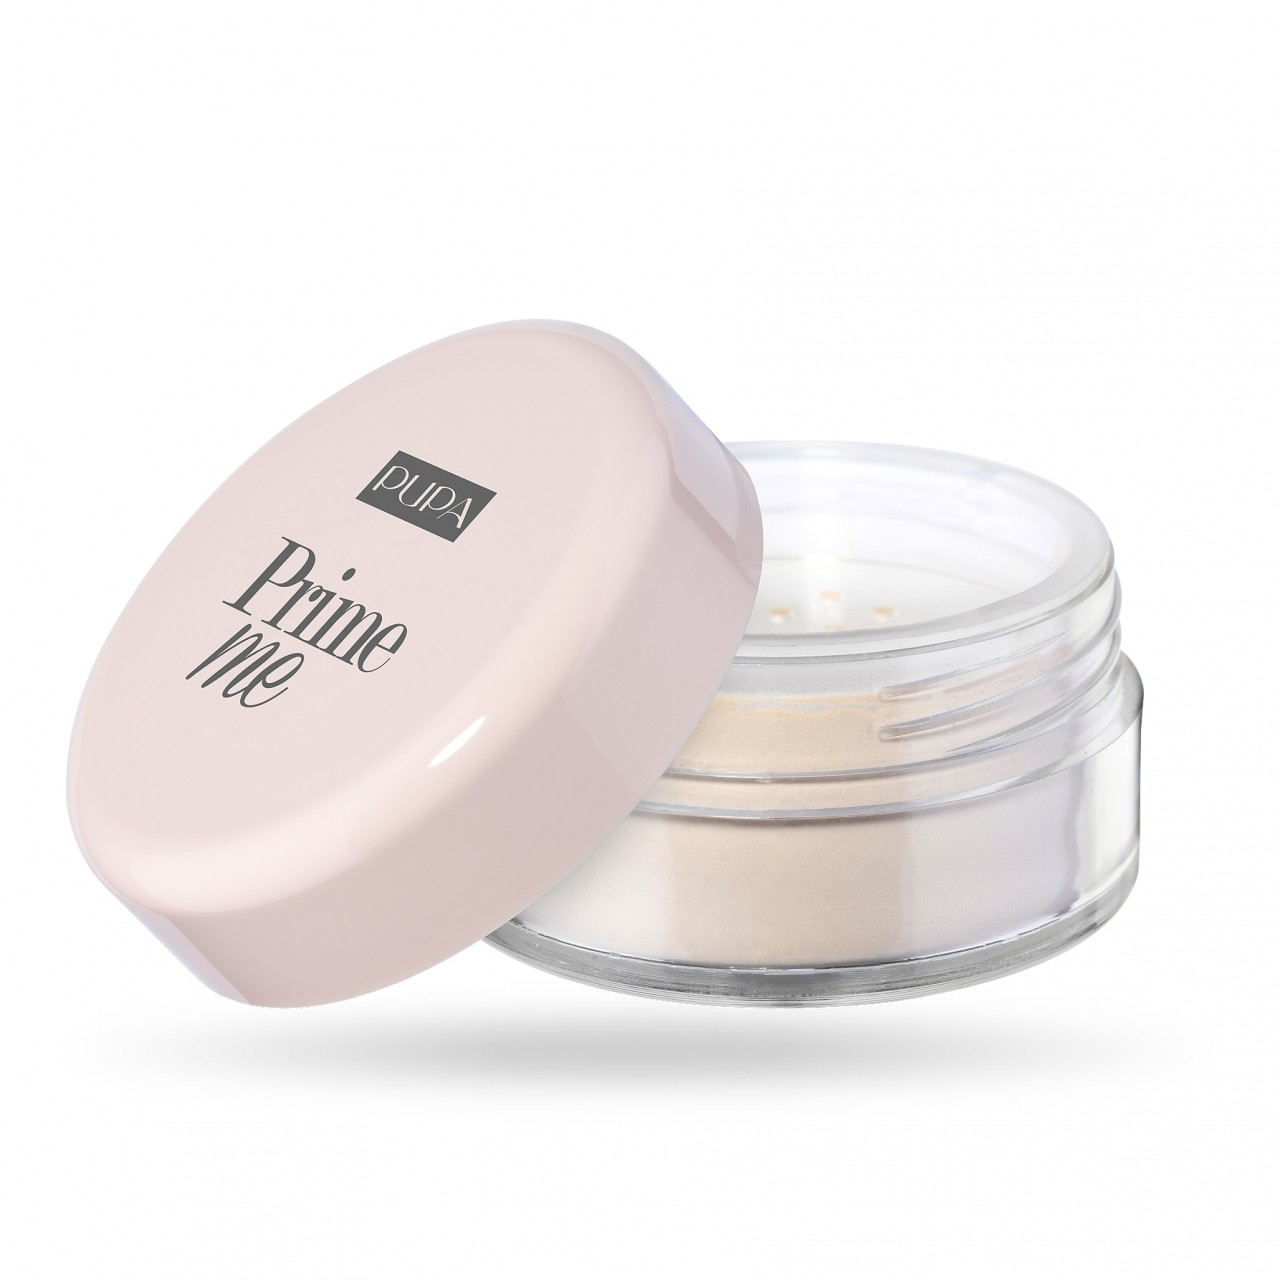 PRIME ME - SETTING POWDER